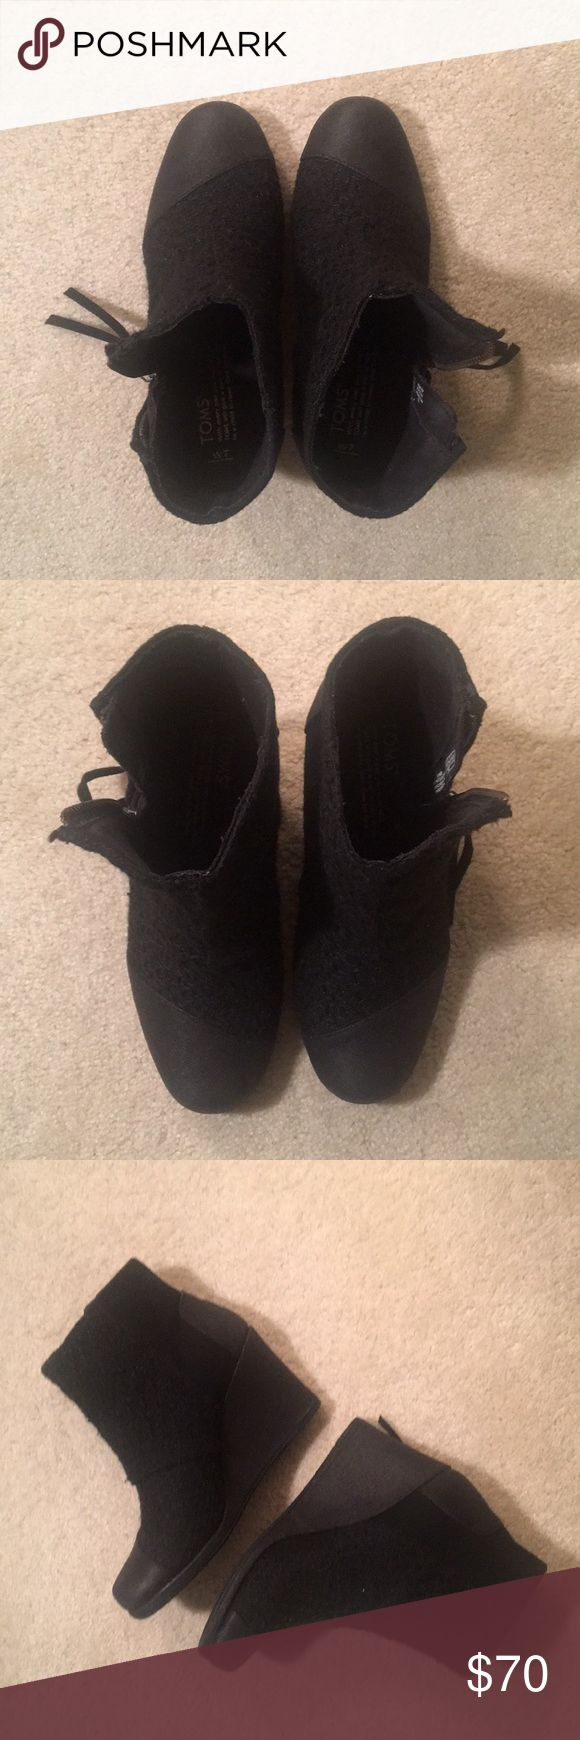 BRAND NEW Toms black wedge booties, size 7 BRAND NEW Toms black wedge booties, size 7; zipper on the side to zip up. Super comfortable to wear and rare! Cannot find these in store anymore. Only worn once to try on so these are brand new! Selling these because I have another pair! Purchased for $130 so trying to recover some of the cost. Model pic for reference! Toms Shoes Ankle Boots & Booties